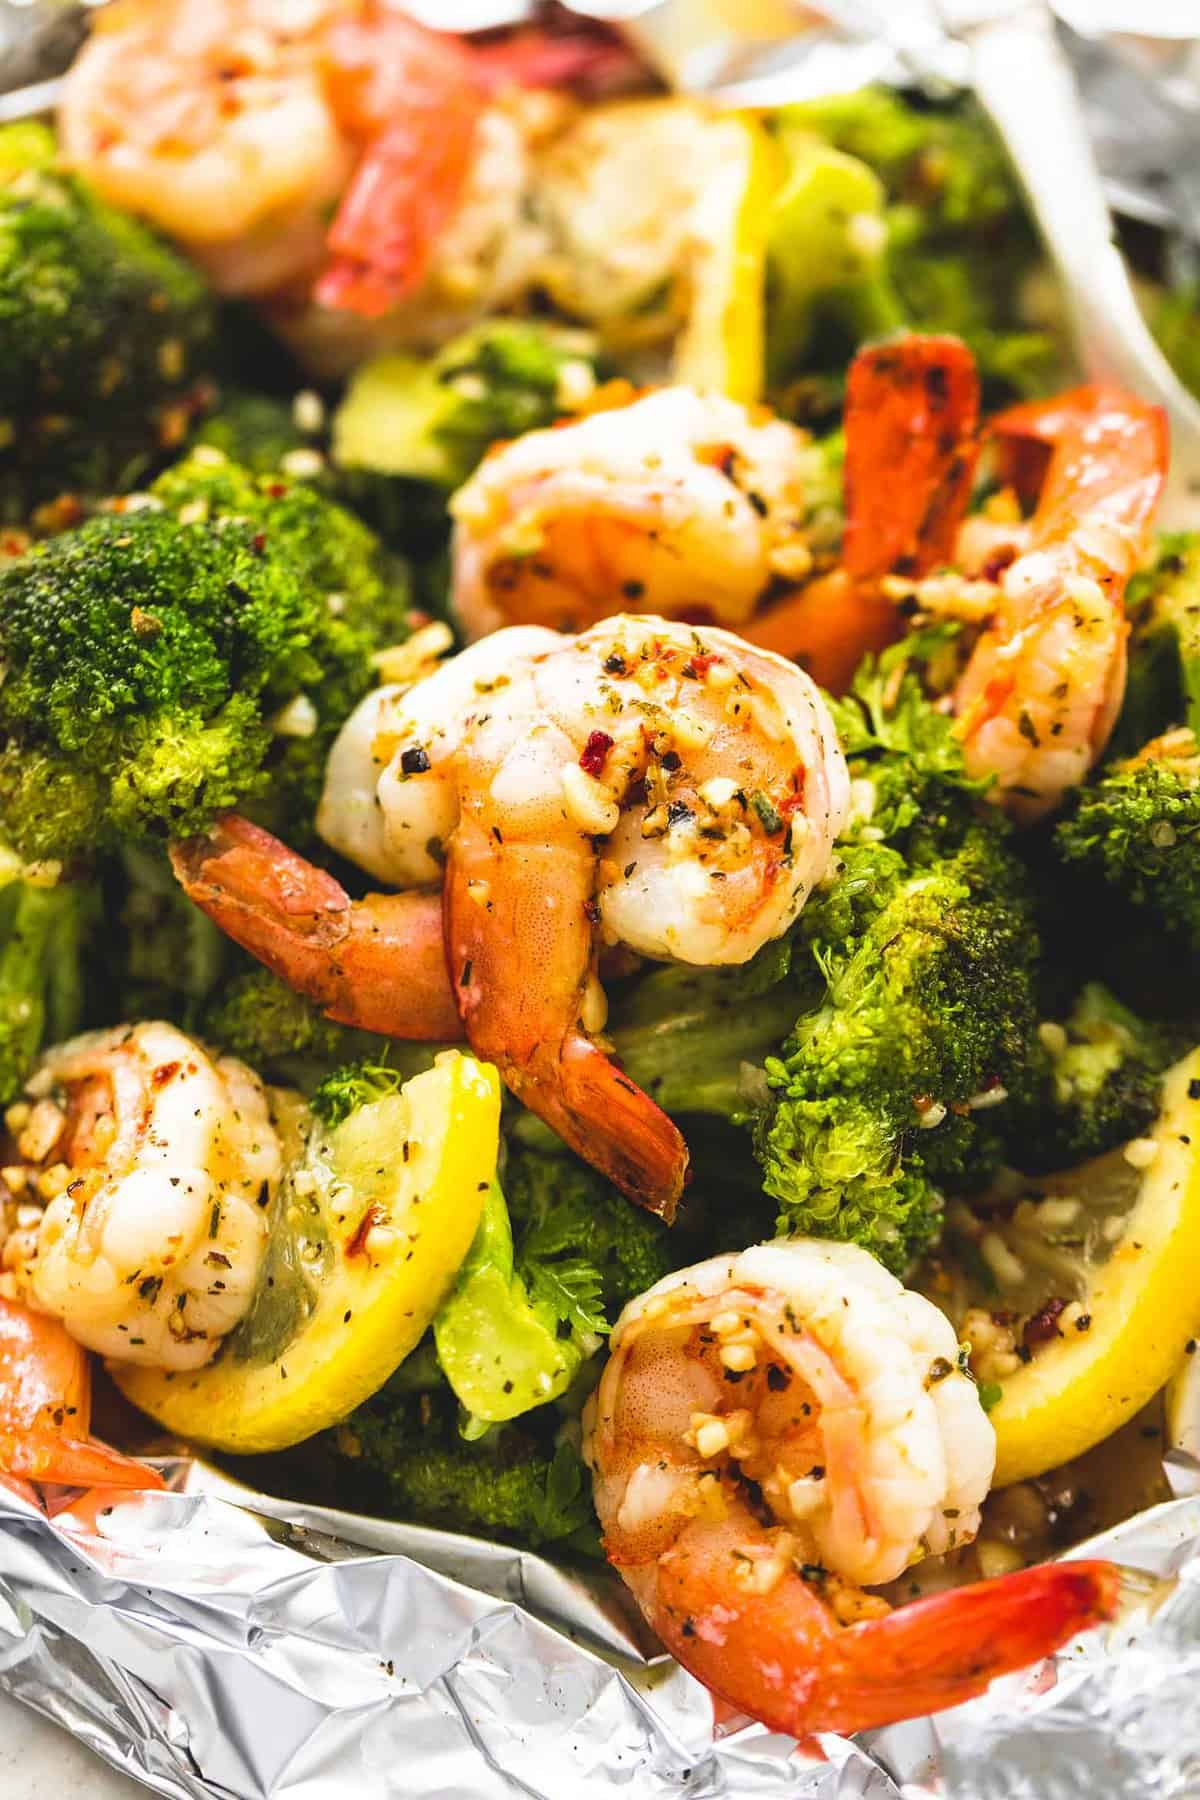 Lemon Herb Shrimp and Broccoli Foil Packs | lecremedelacrumb.com